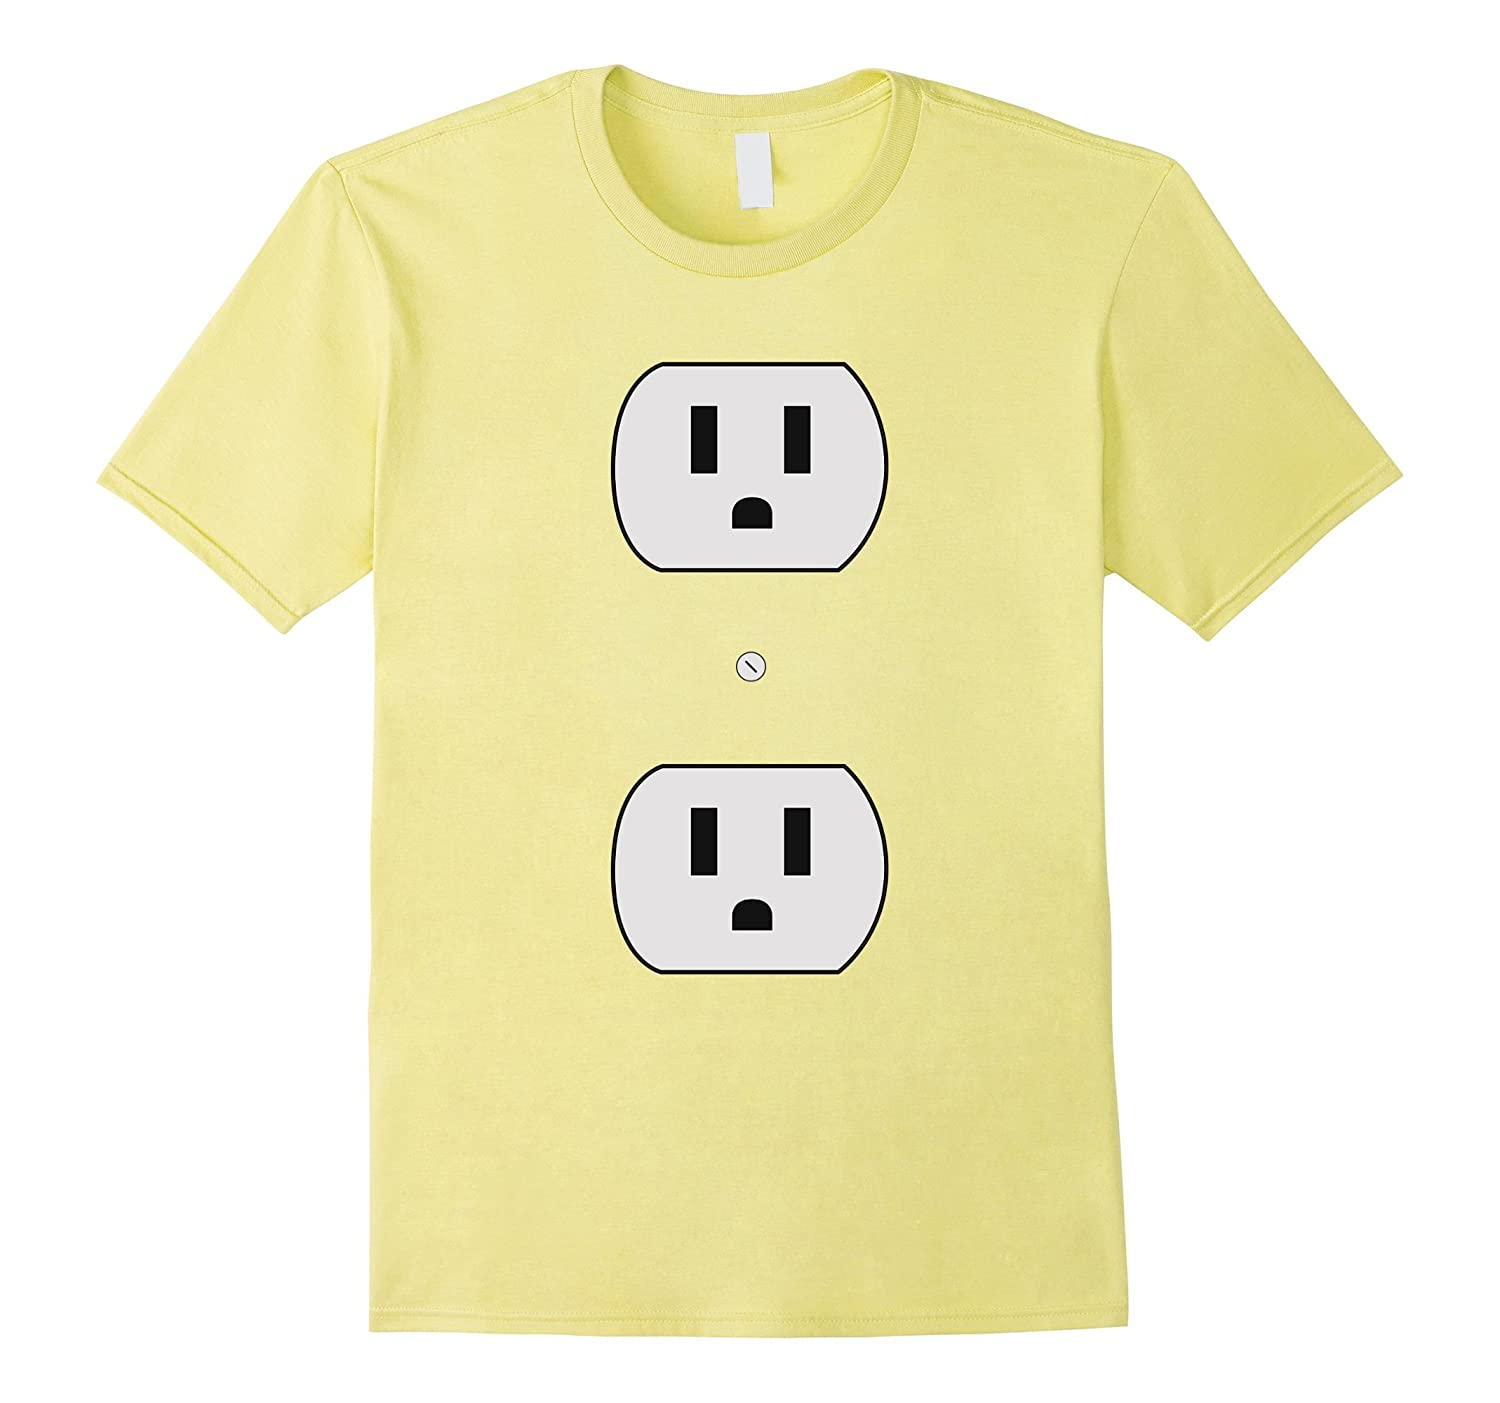 Super Simple Easy Halloween Costume - Electrical Outlet Plug-T-Shirt